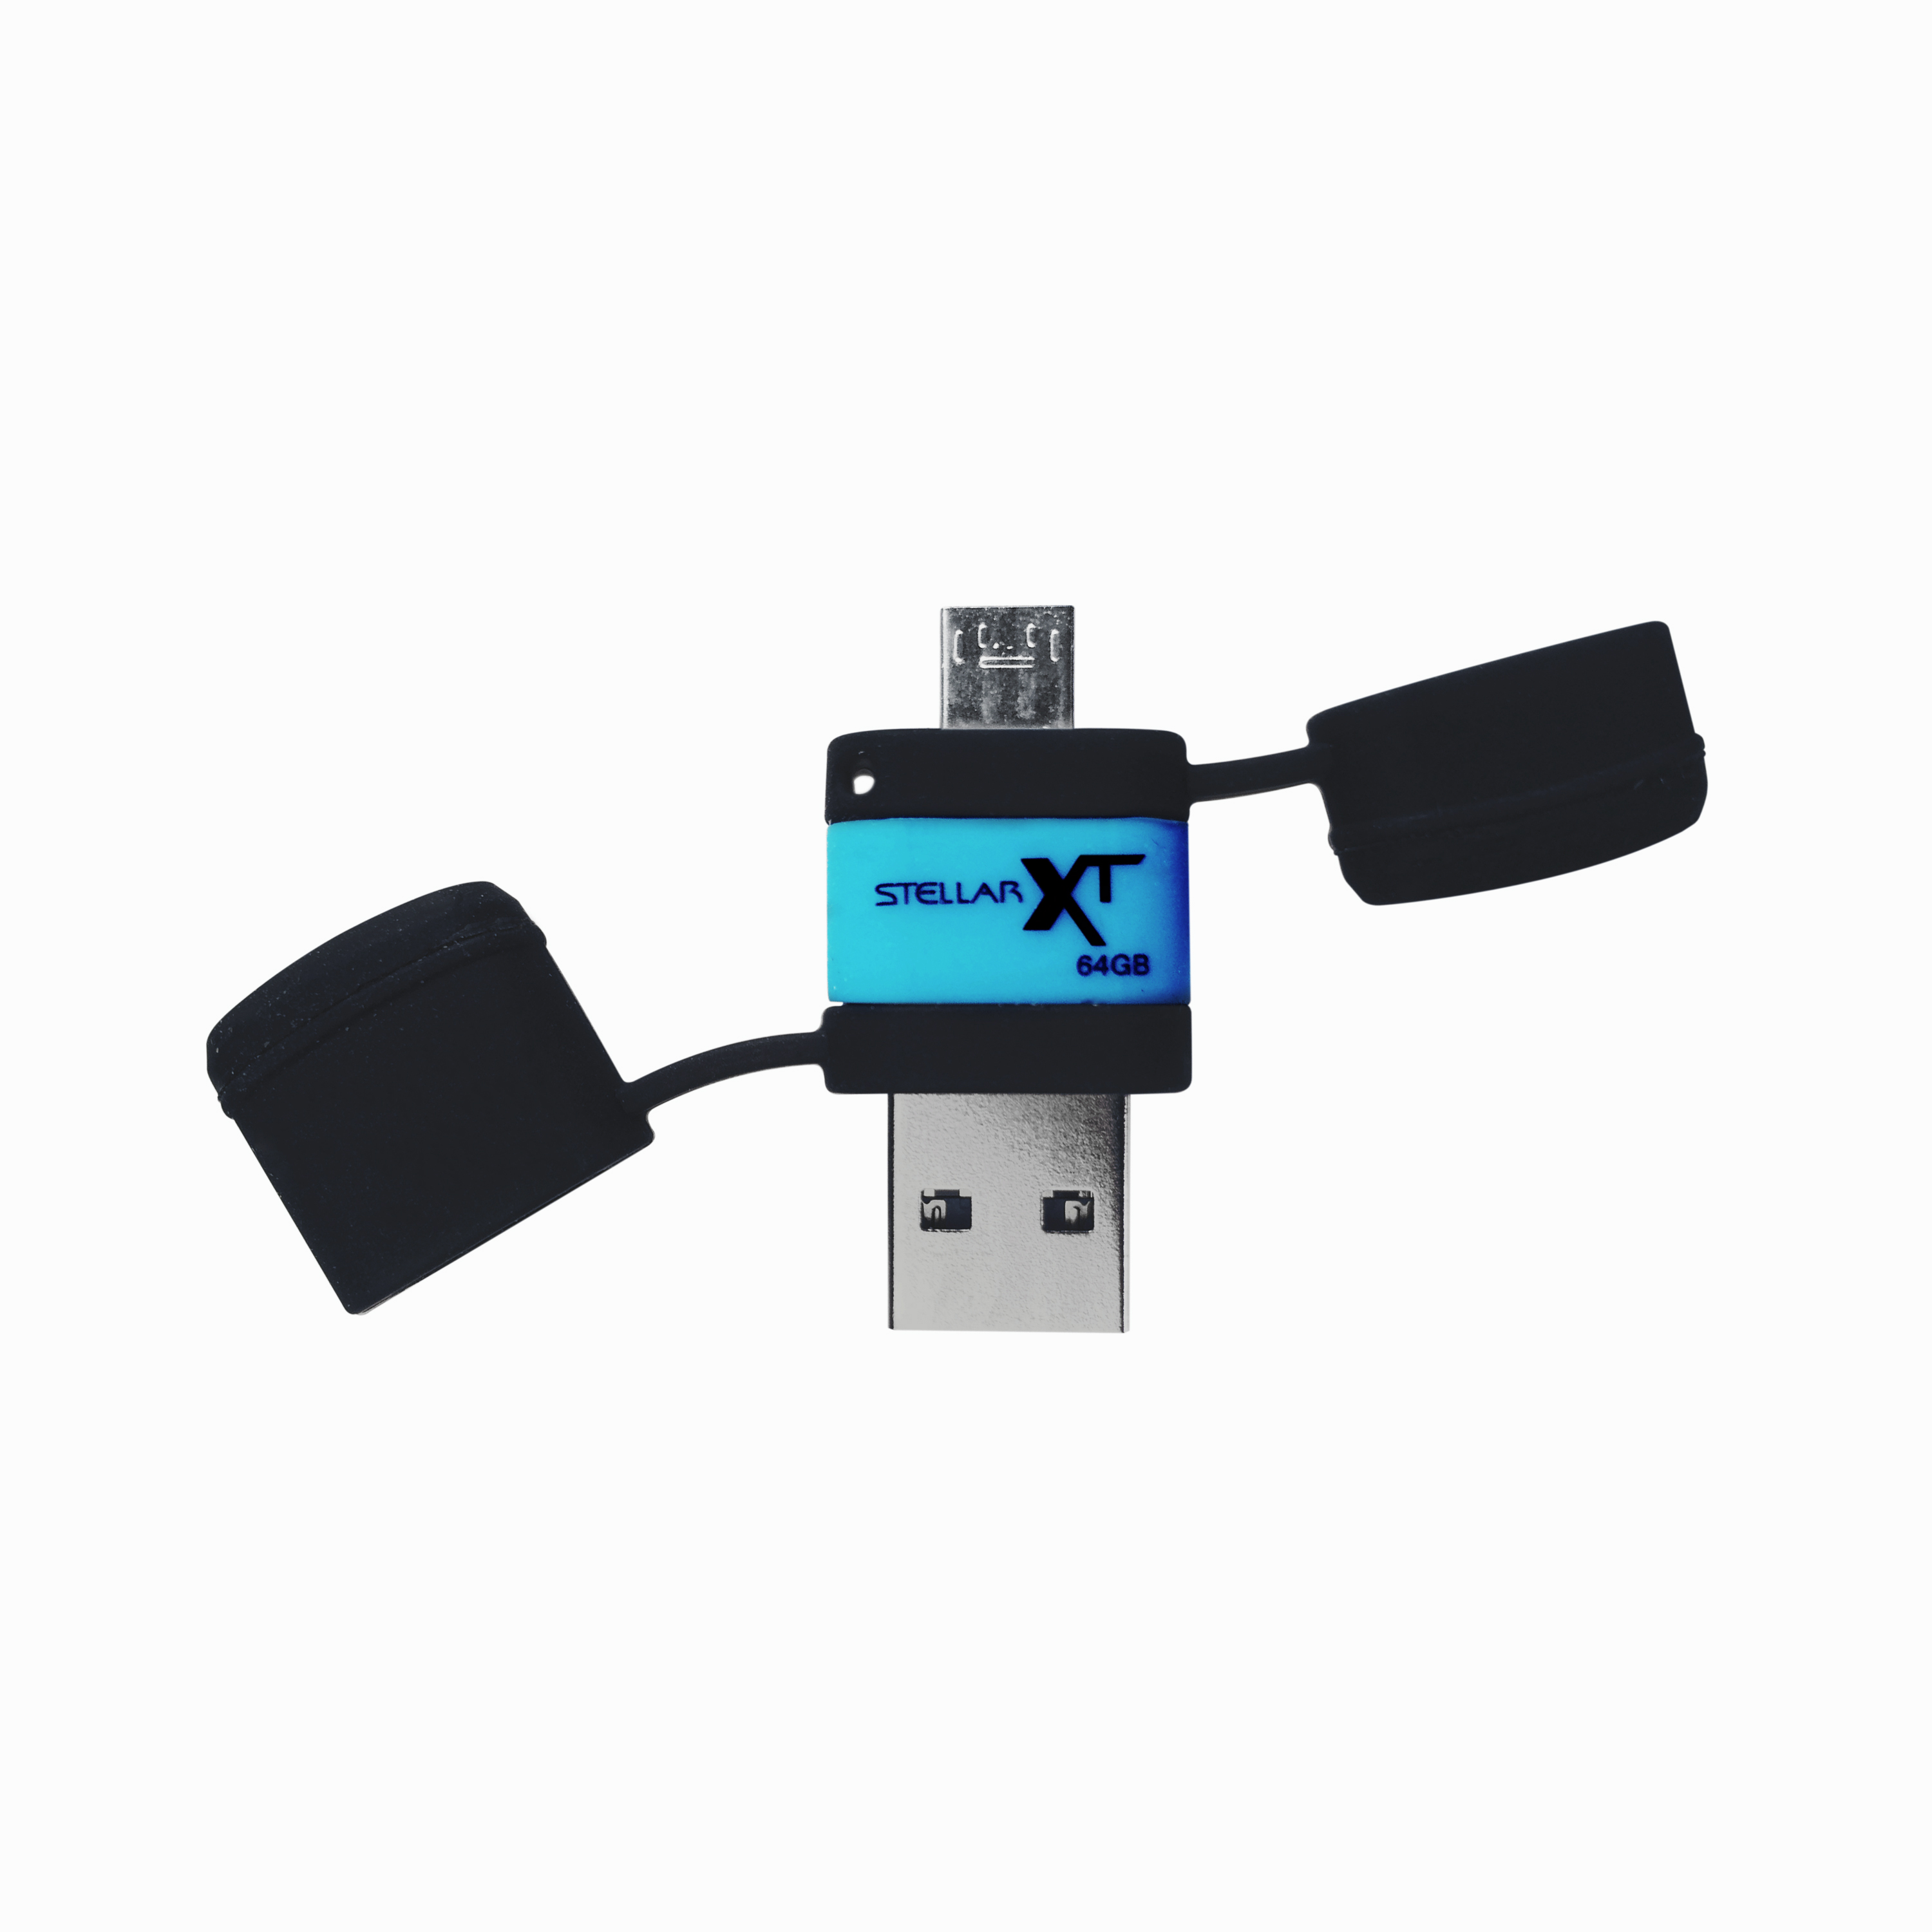 64GB Patriot Stellar XT OTG USB 3.0  110/20MBs